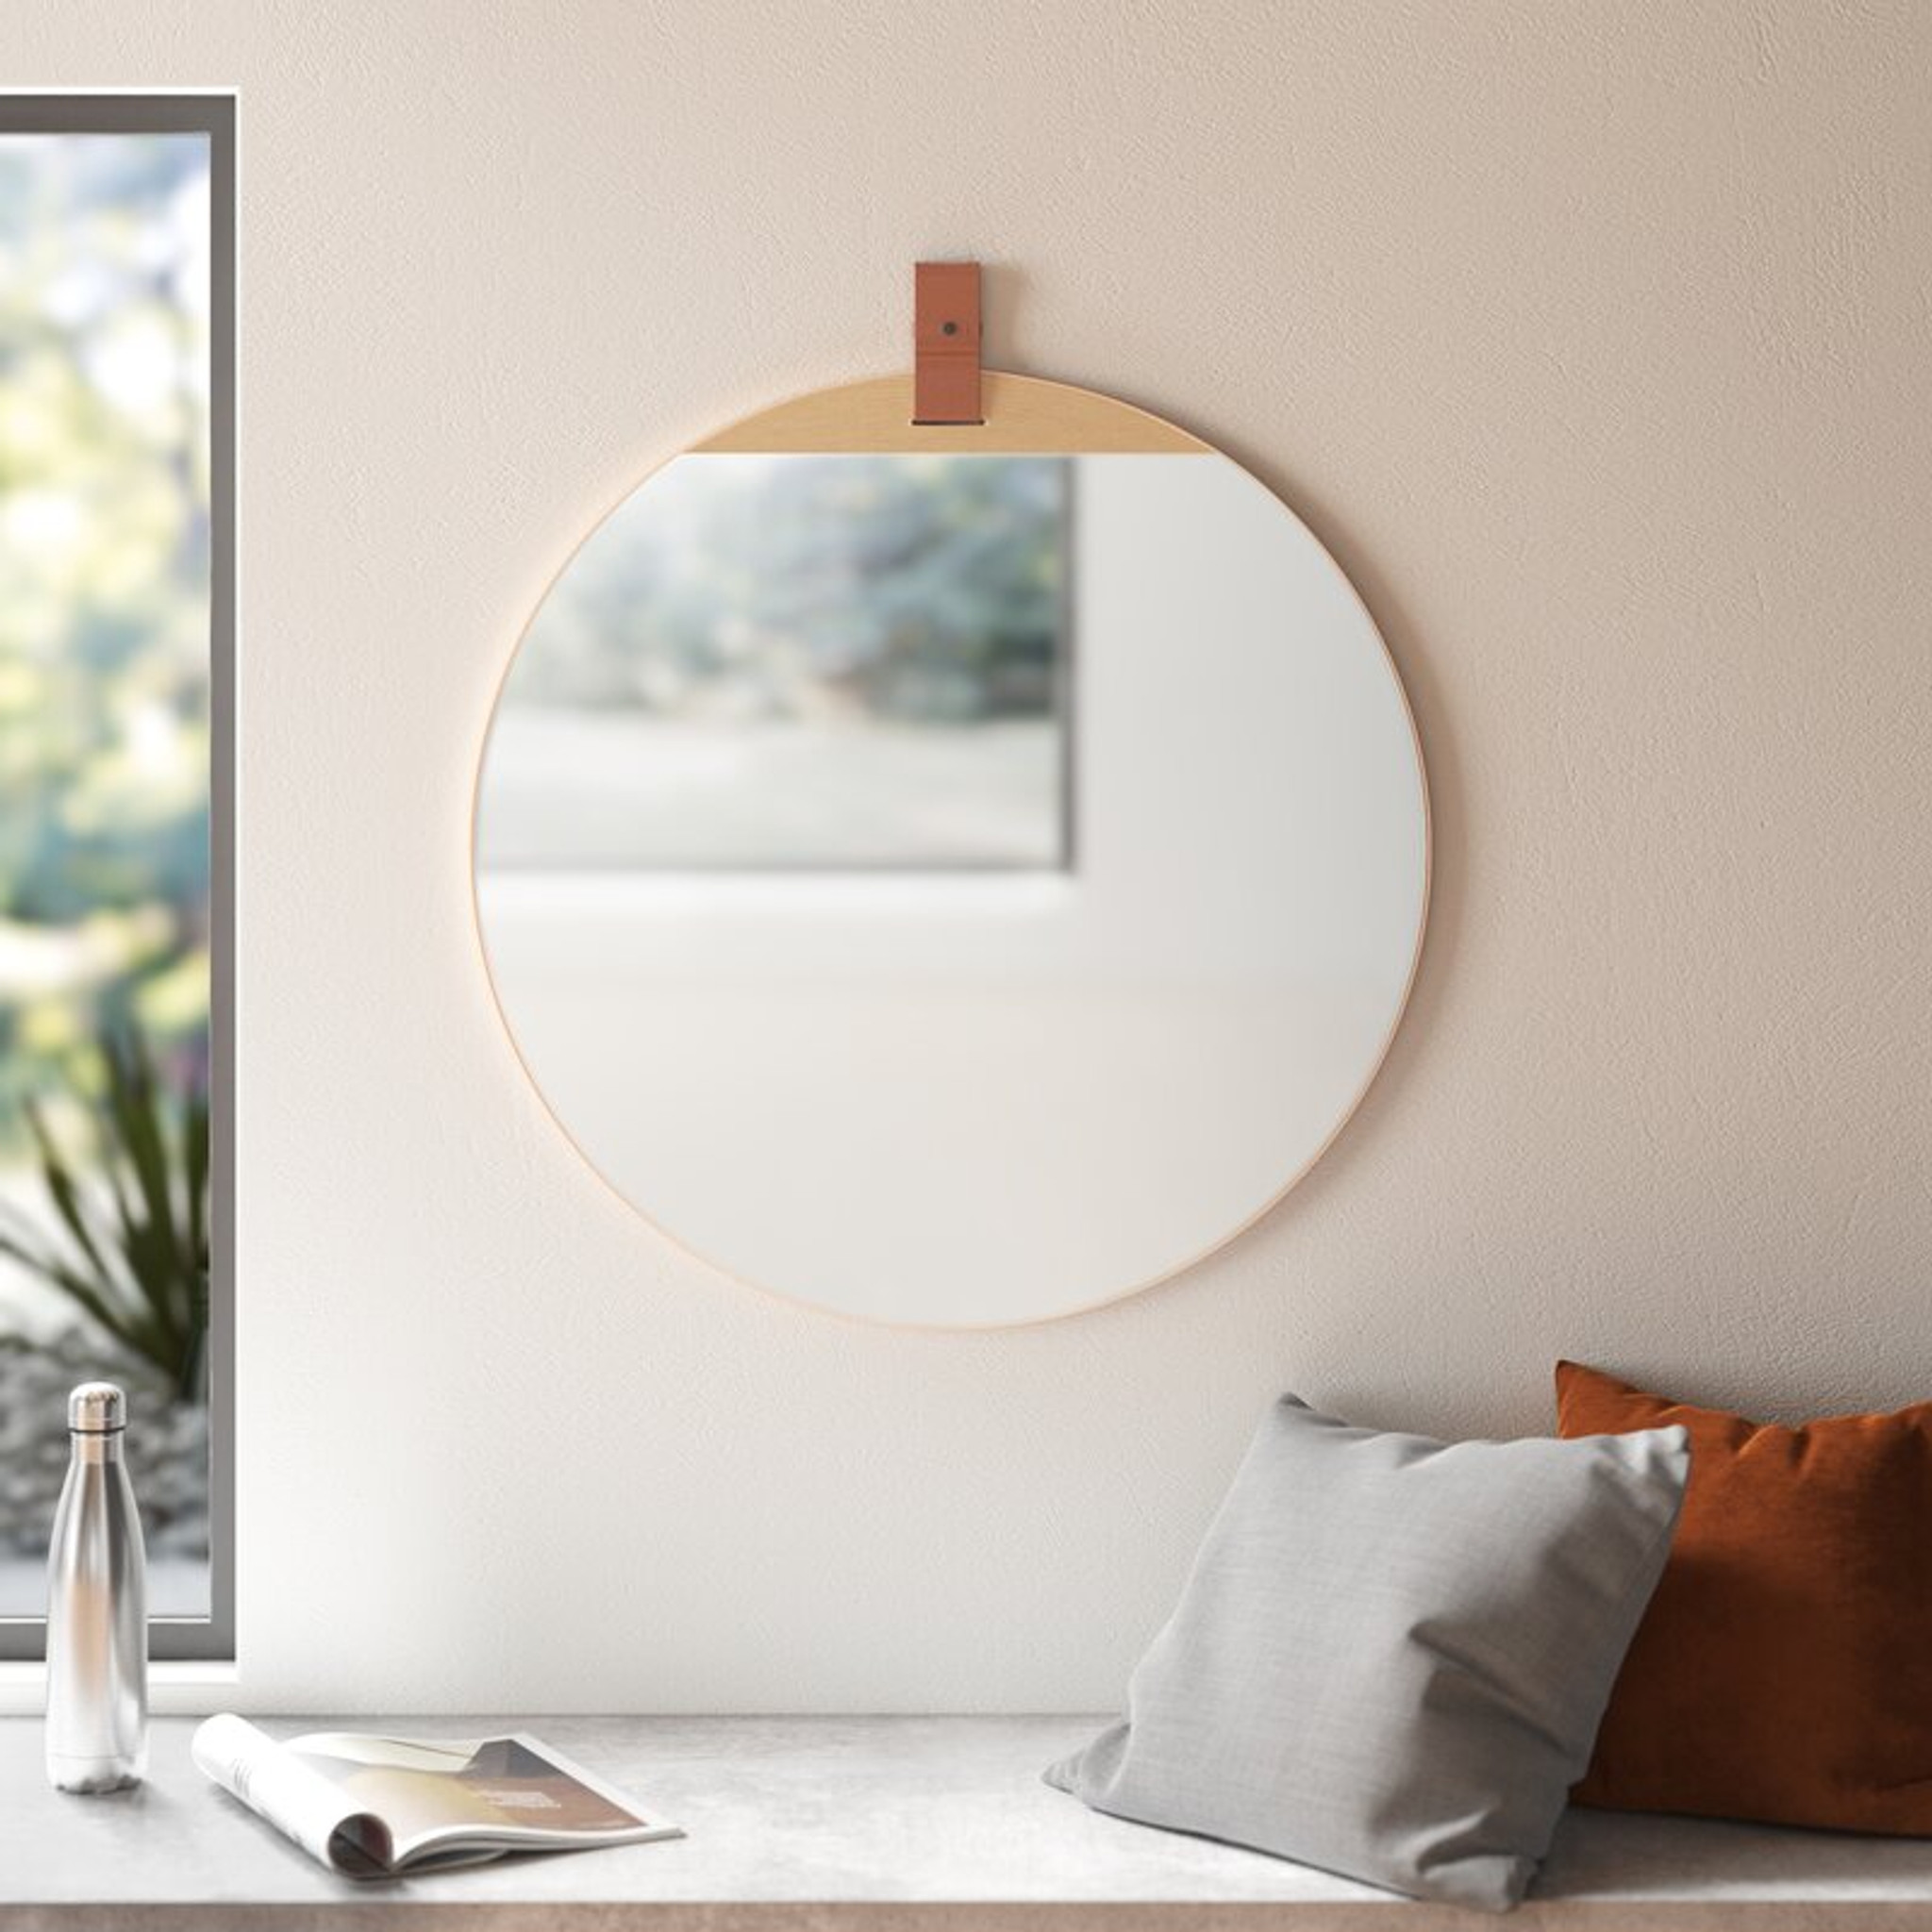 cooper classics Heppner Wall Mirror frameless round leather strap top